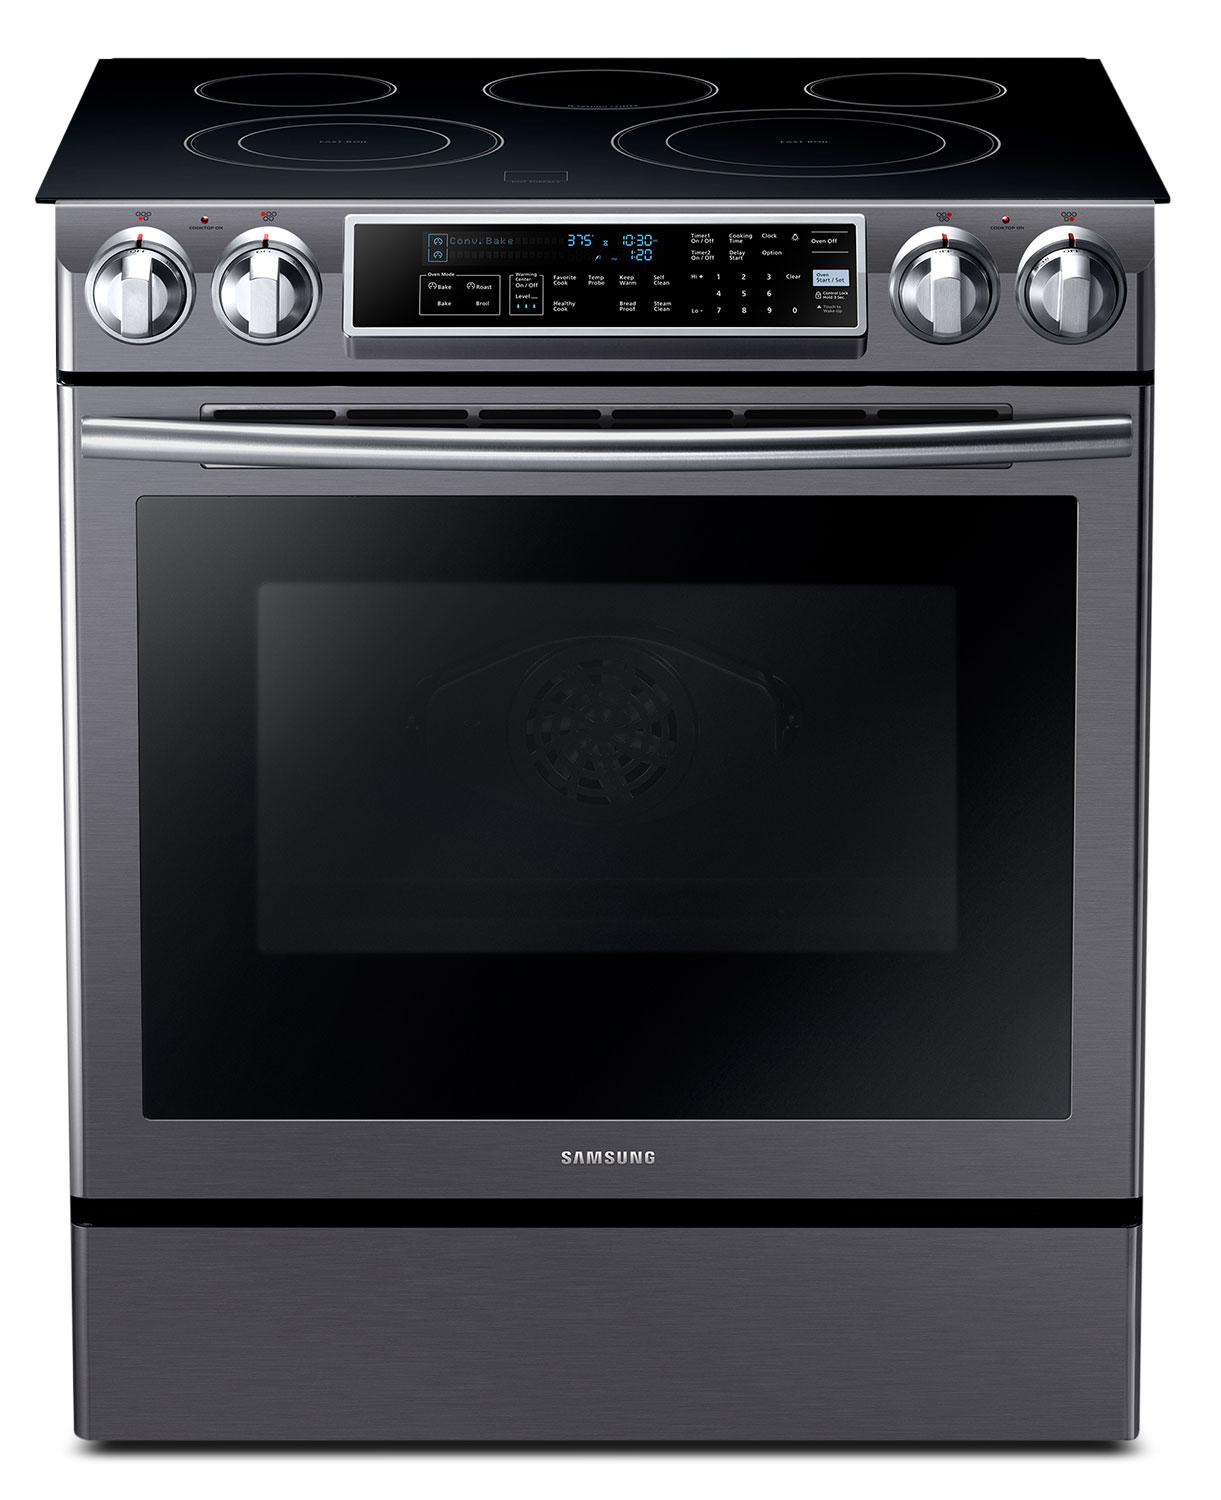 Samsung 5.8 Cu. Ft. Slide-In Electric Range – NE58K9500SG